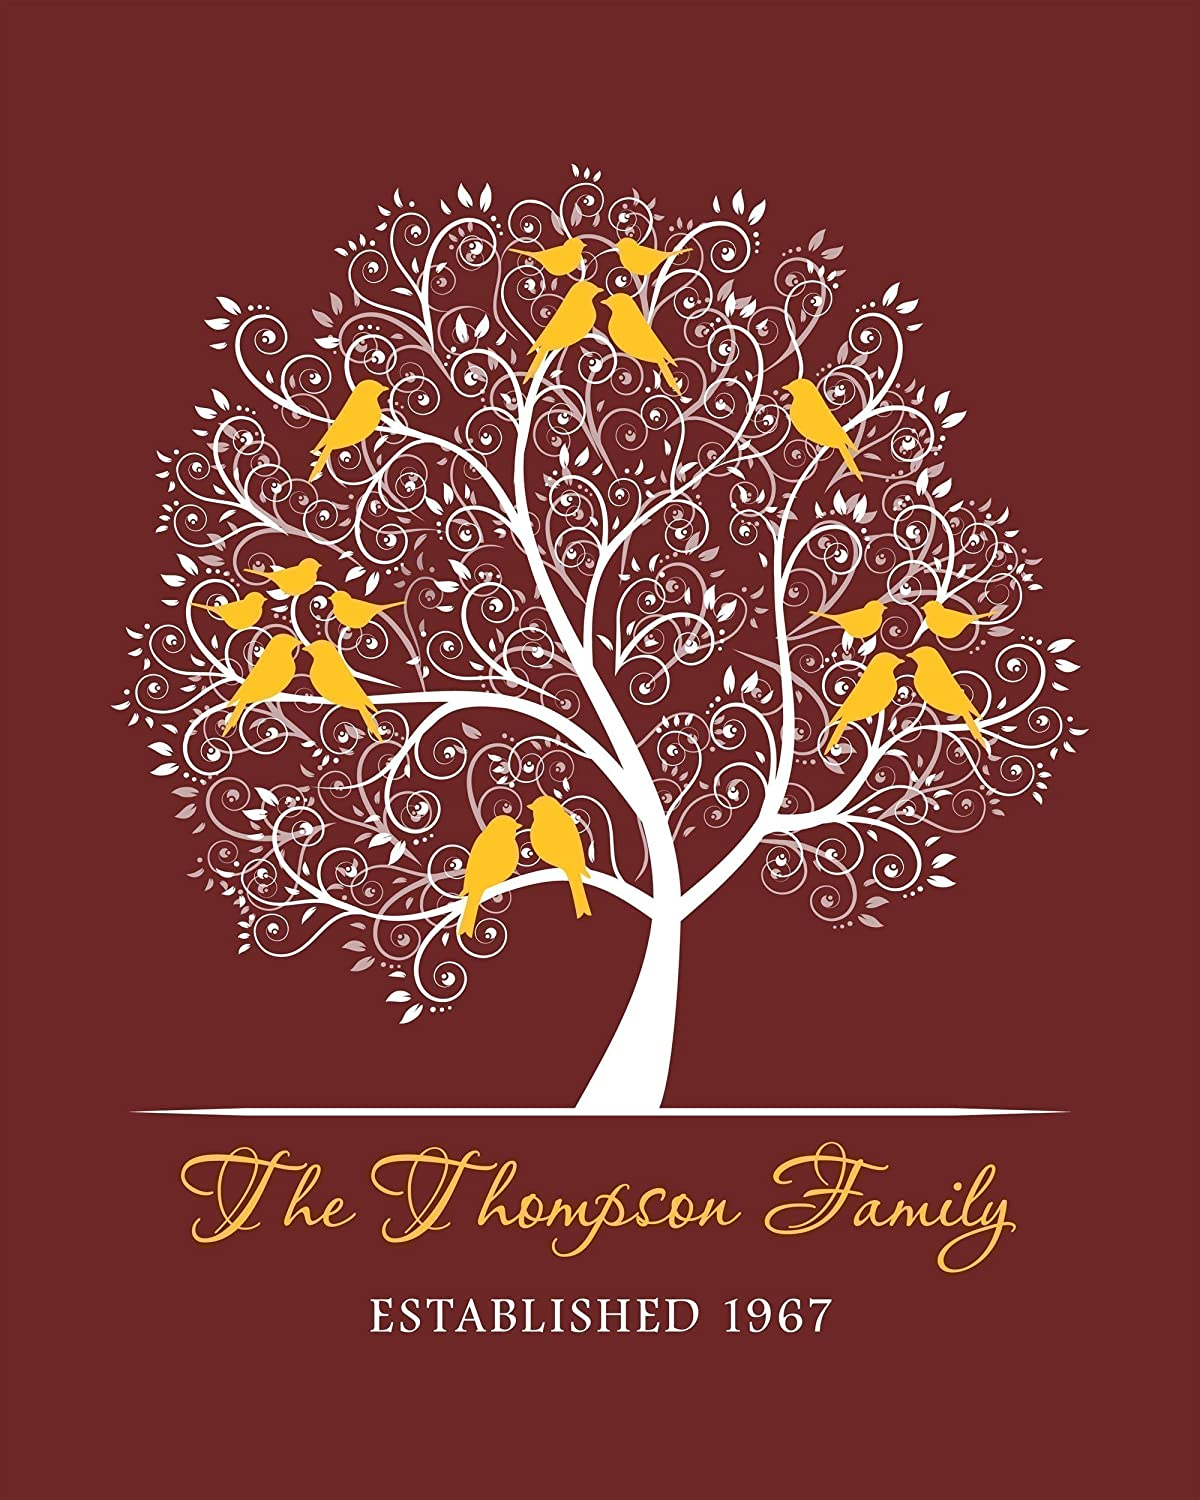 Amazon.com: Personalized Family Tree, Wedding Anniversary Gift for ...